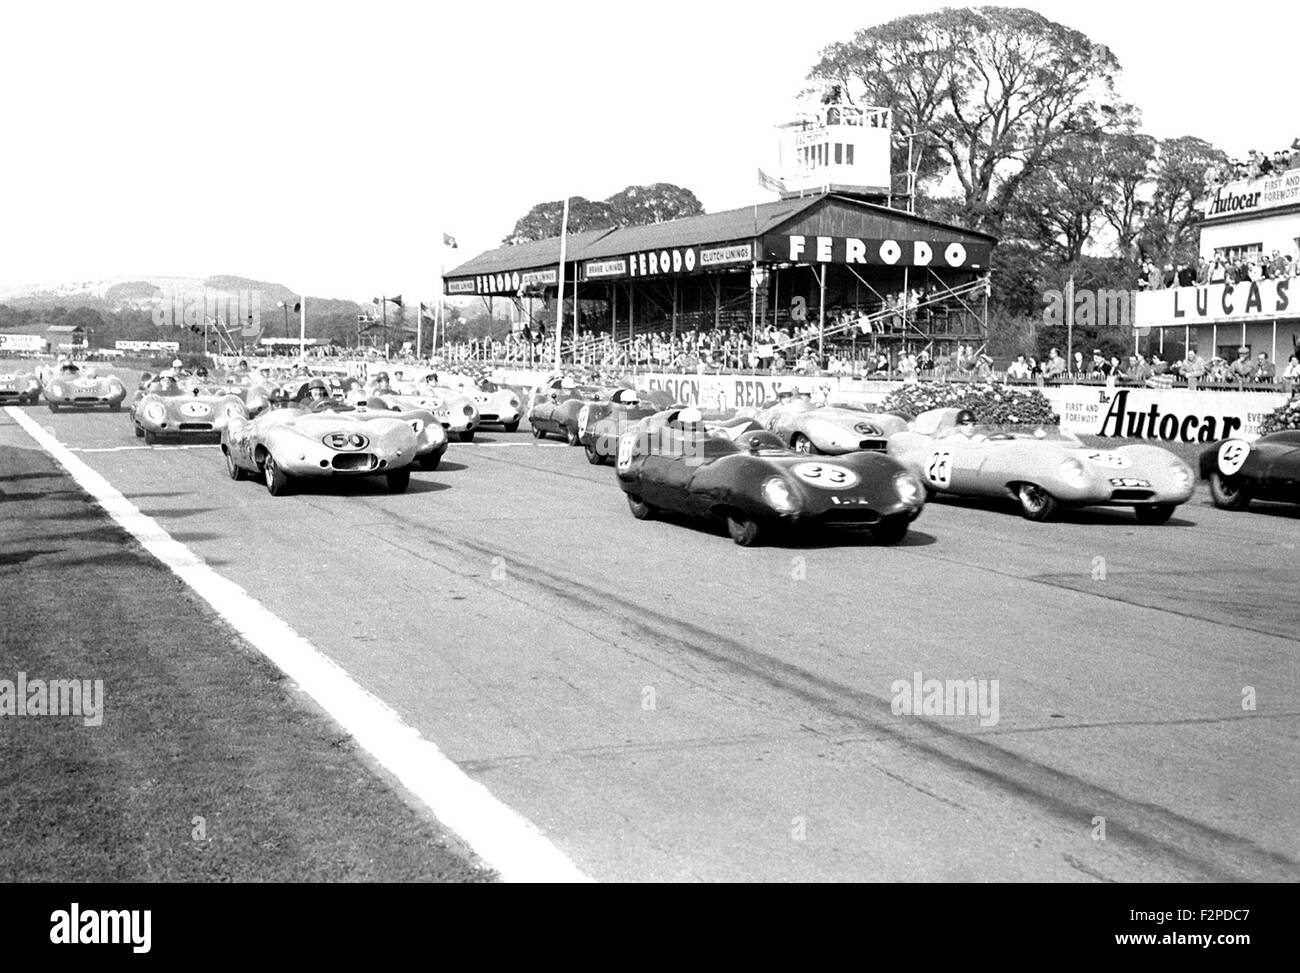 Start of the race at Goodwood 1957 - Stock Image